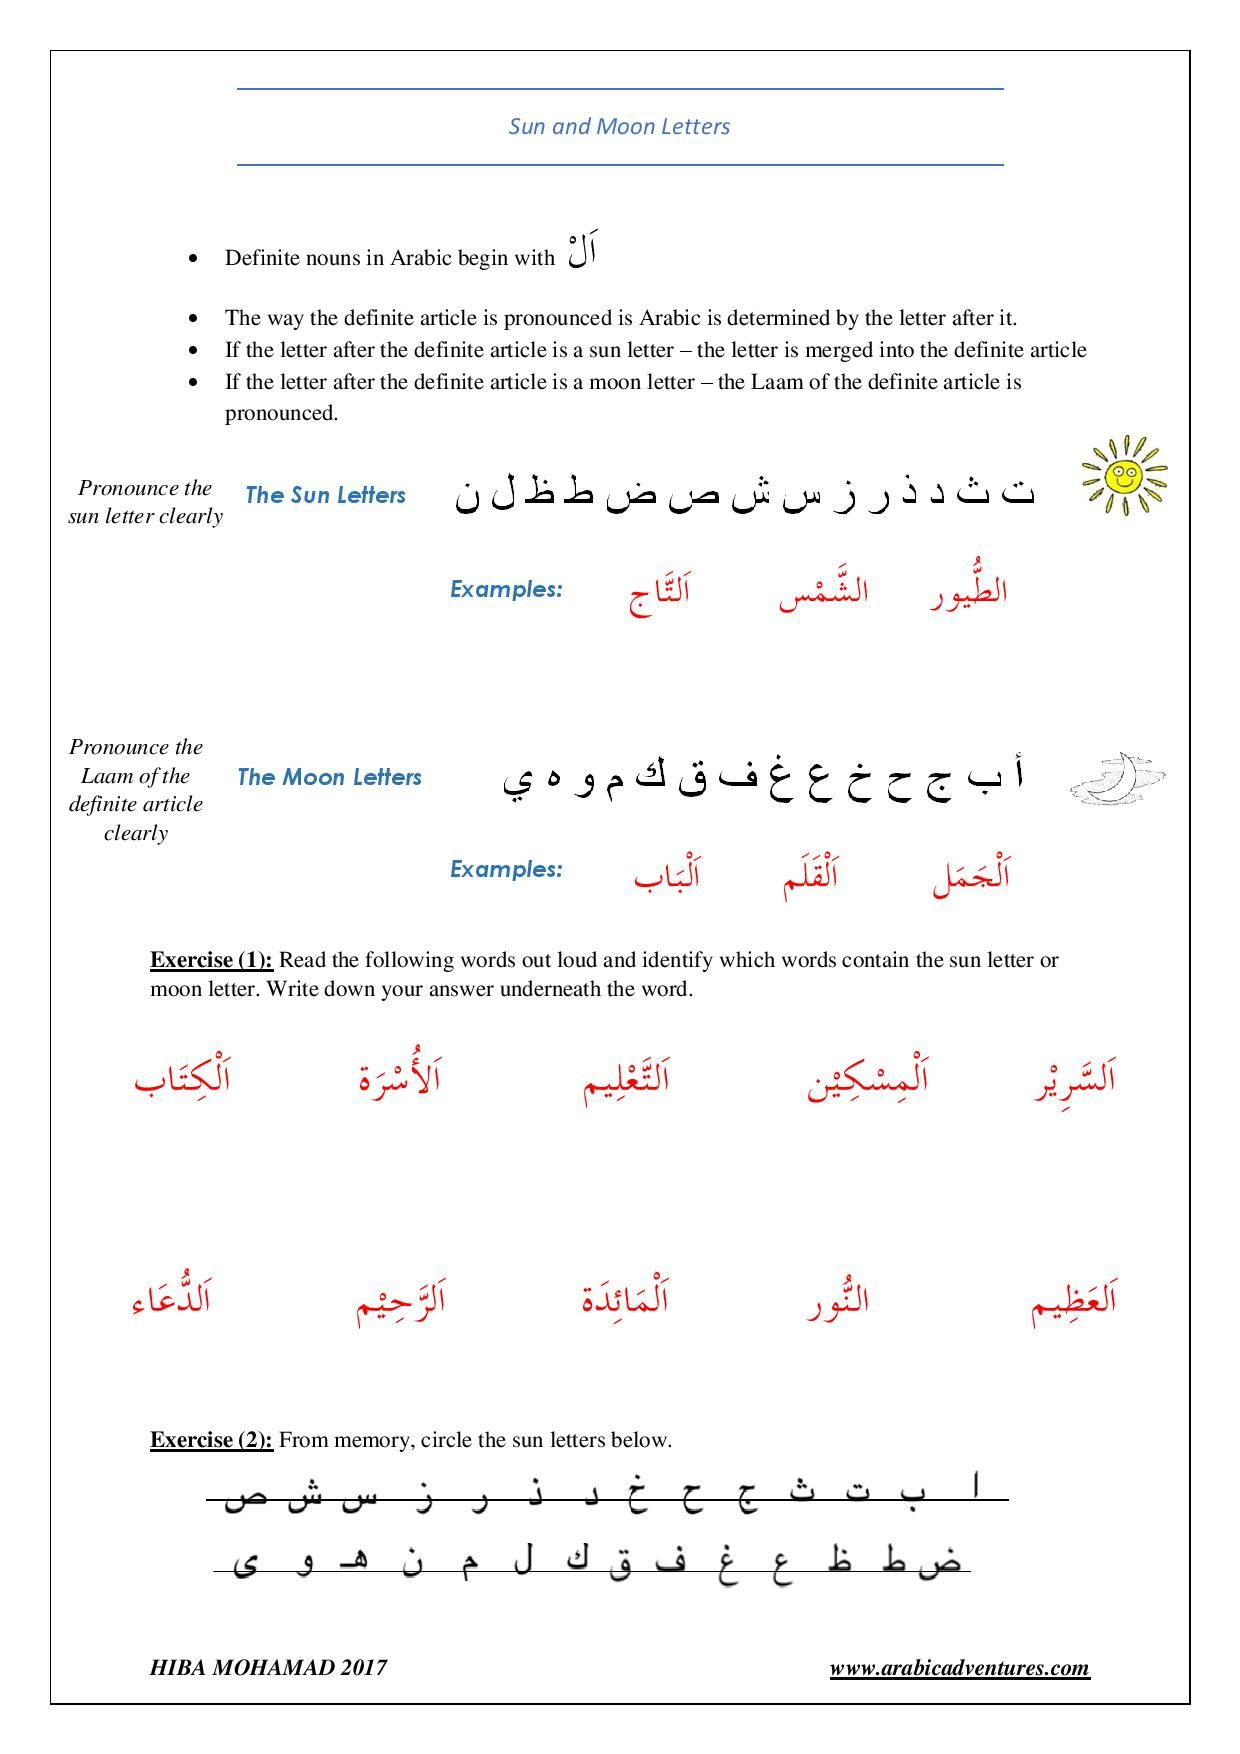 Sun and Moon letters in Arabic worksheet arabicadventures – Sun Worksheet